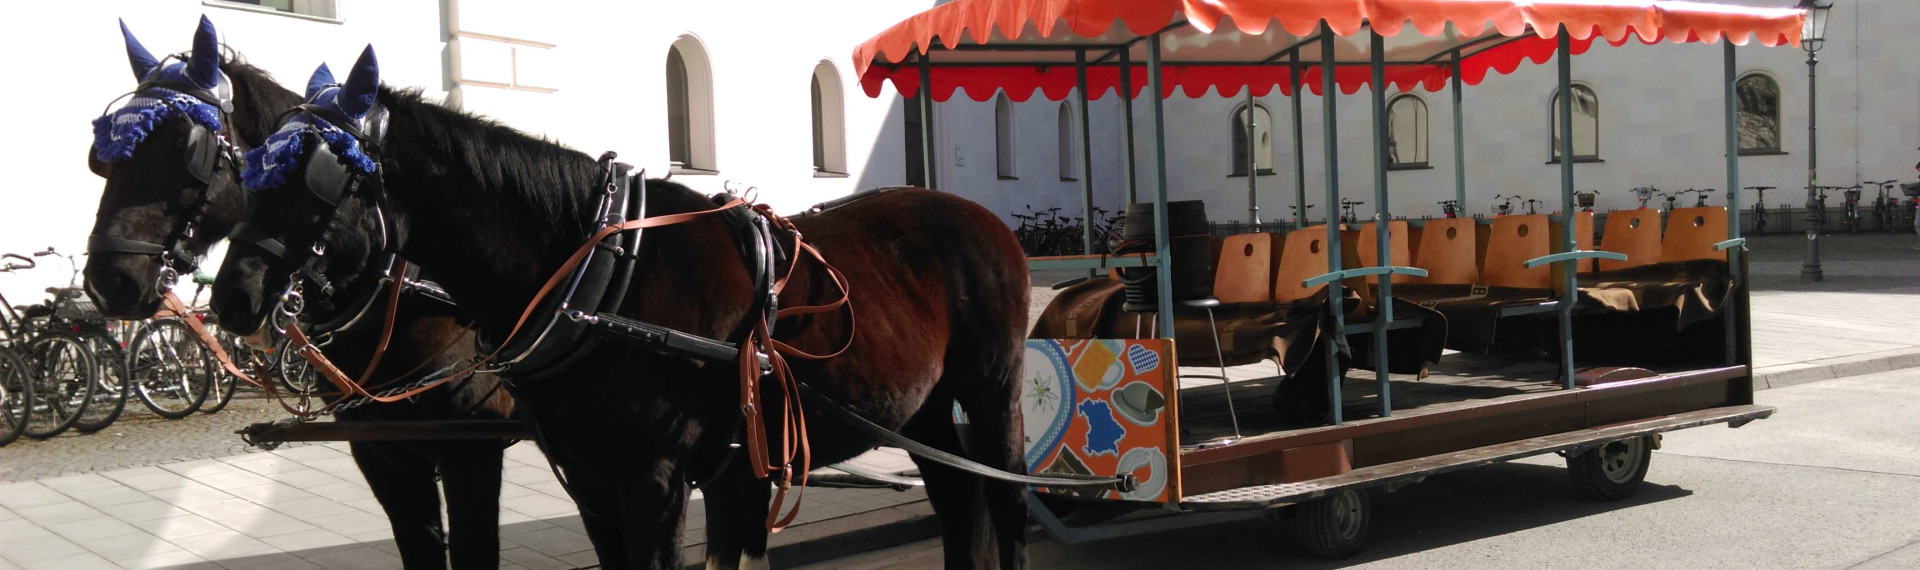 Horse & Carriage Beer Tour Munich  | Pissup Tours